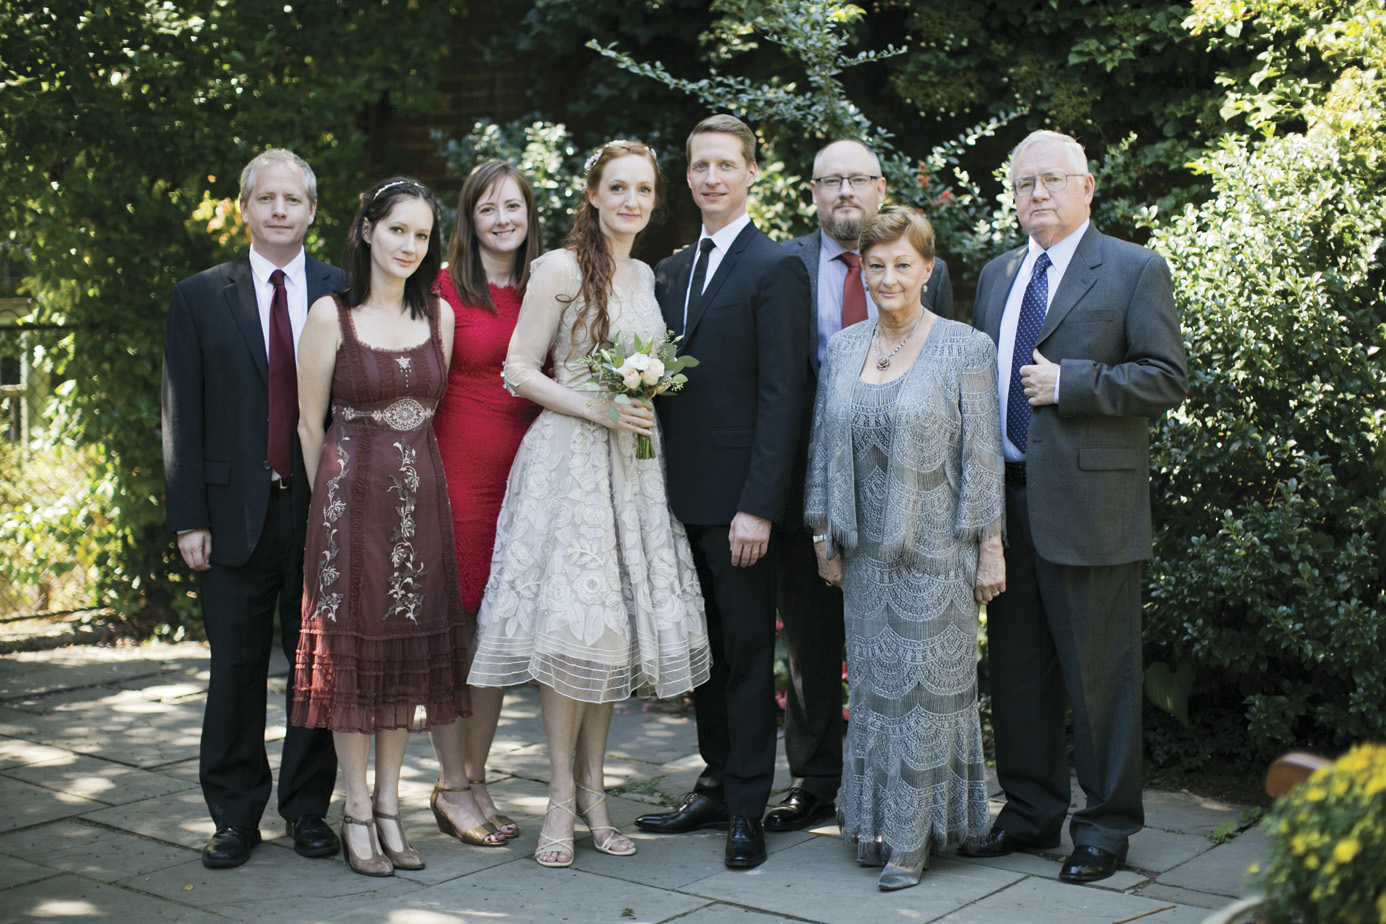 Wedding day, September 19, 2015. Pictured with the Murphy side of the family  (from left to right: Kevin, Tessa, Amy (Kevin's fiance), Gillian, Ethan, Thad, Carol (mom), Paul (dad) Murphy. (Photo: Mel Barlow)